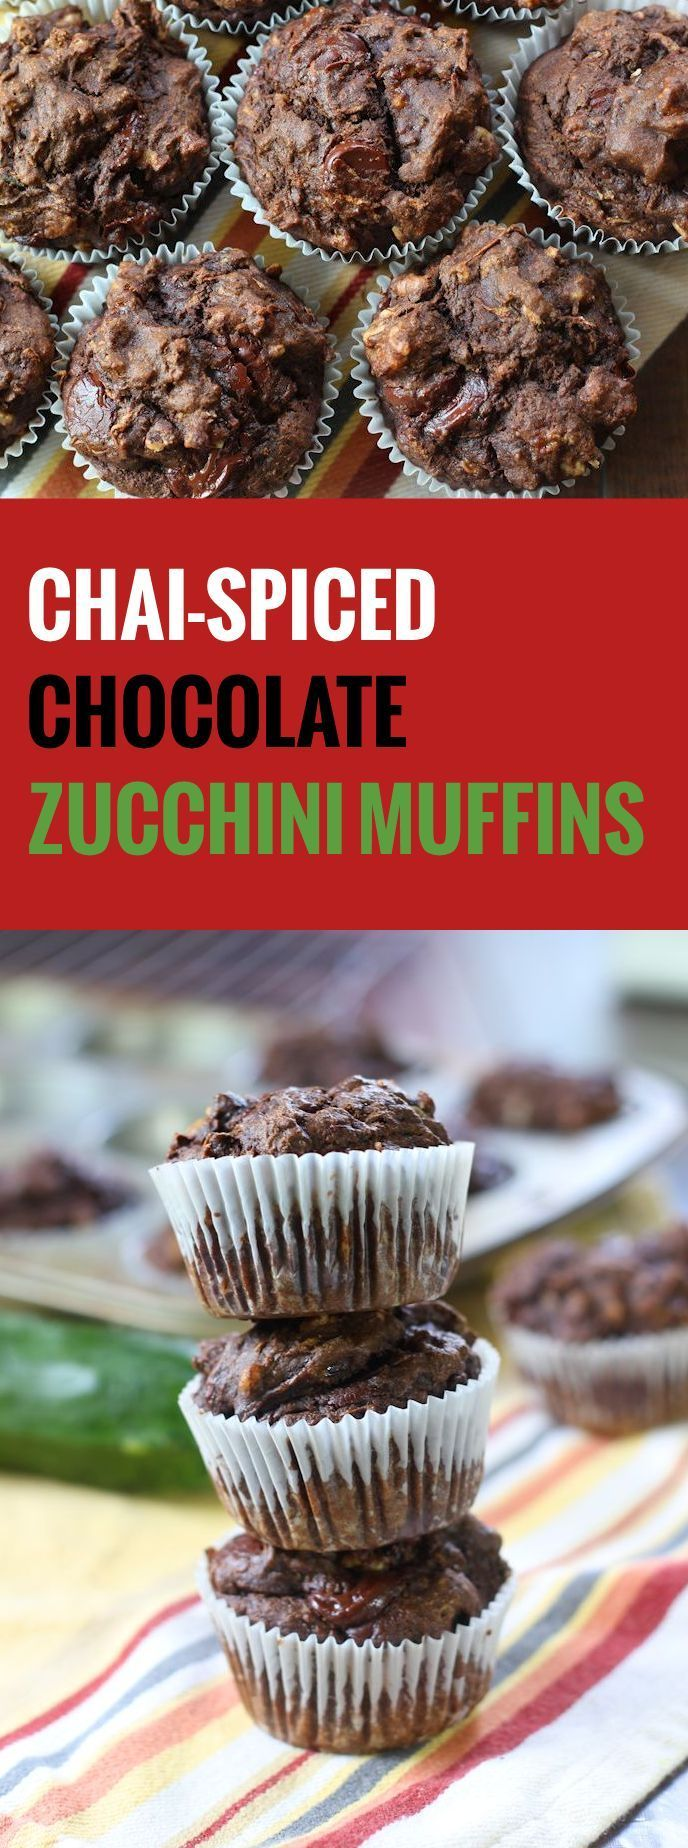 These moist chocolate zucchini muffins are bursting with rich chocolate chips, crunchy walnuts and the flavors of a cup of chai-spiced tea.